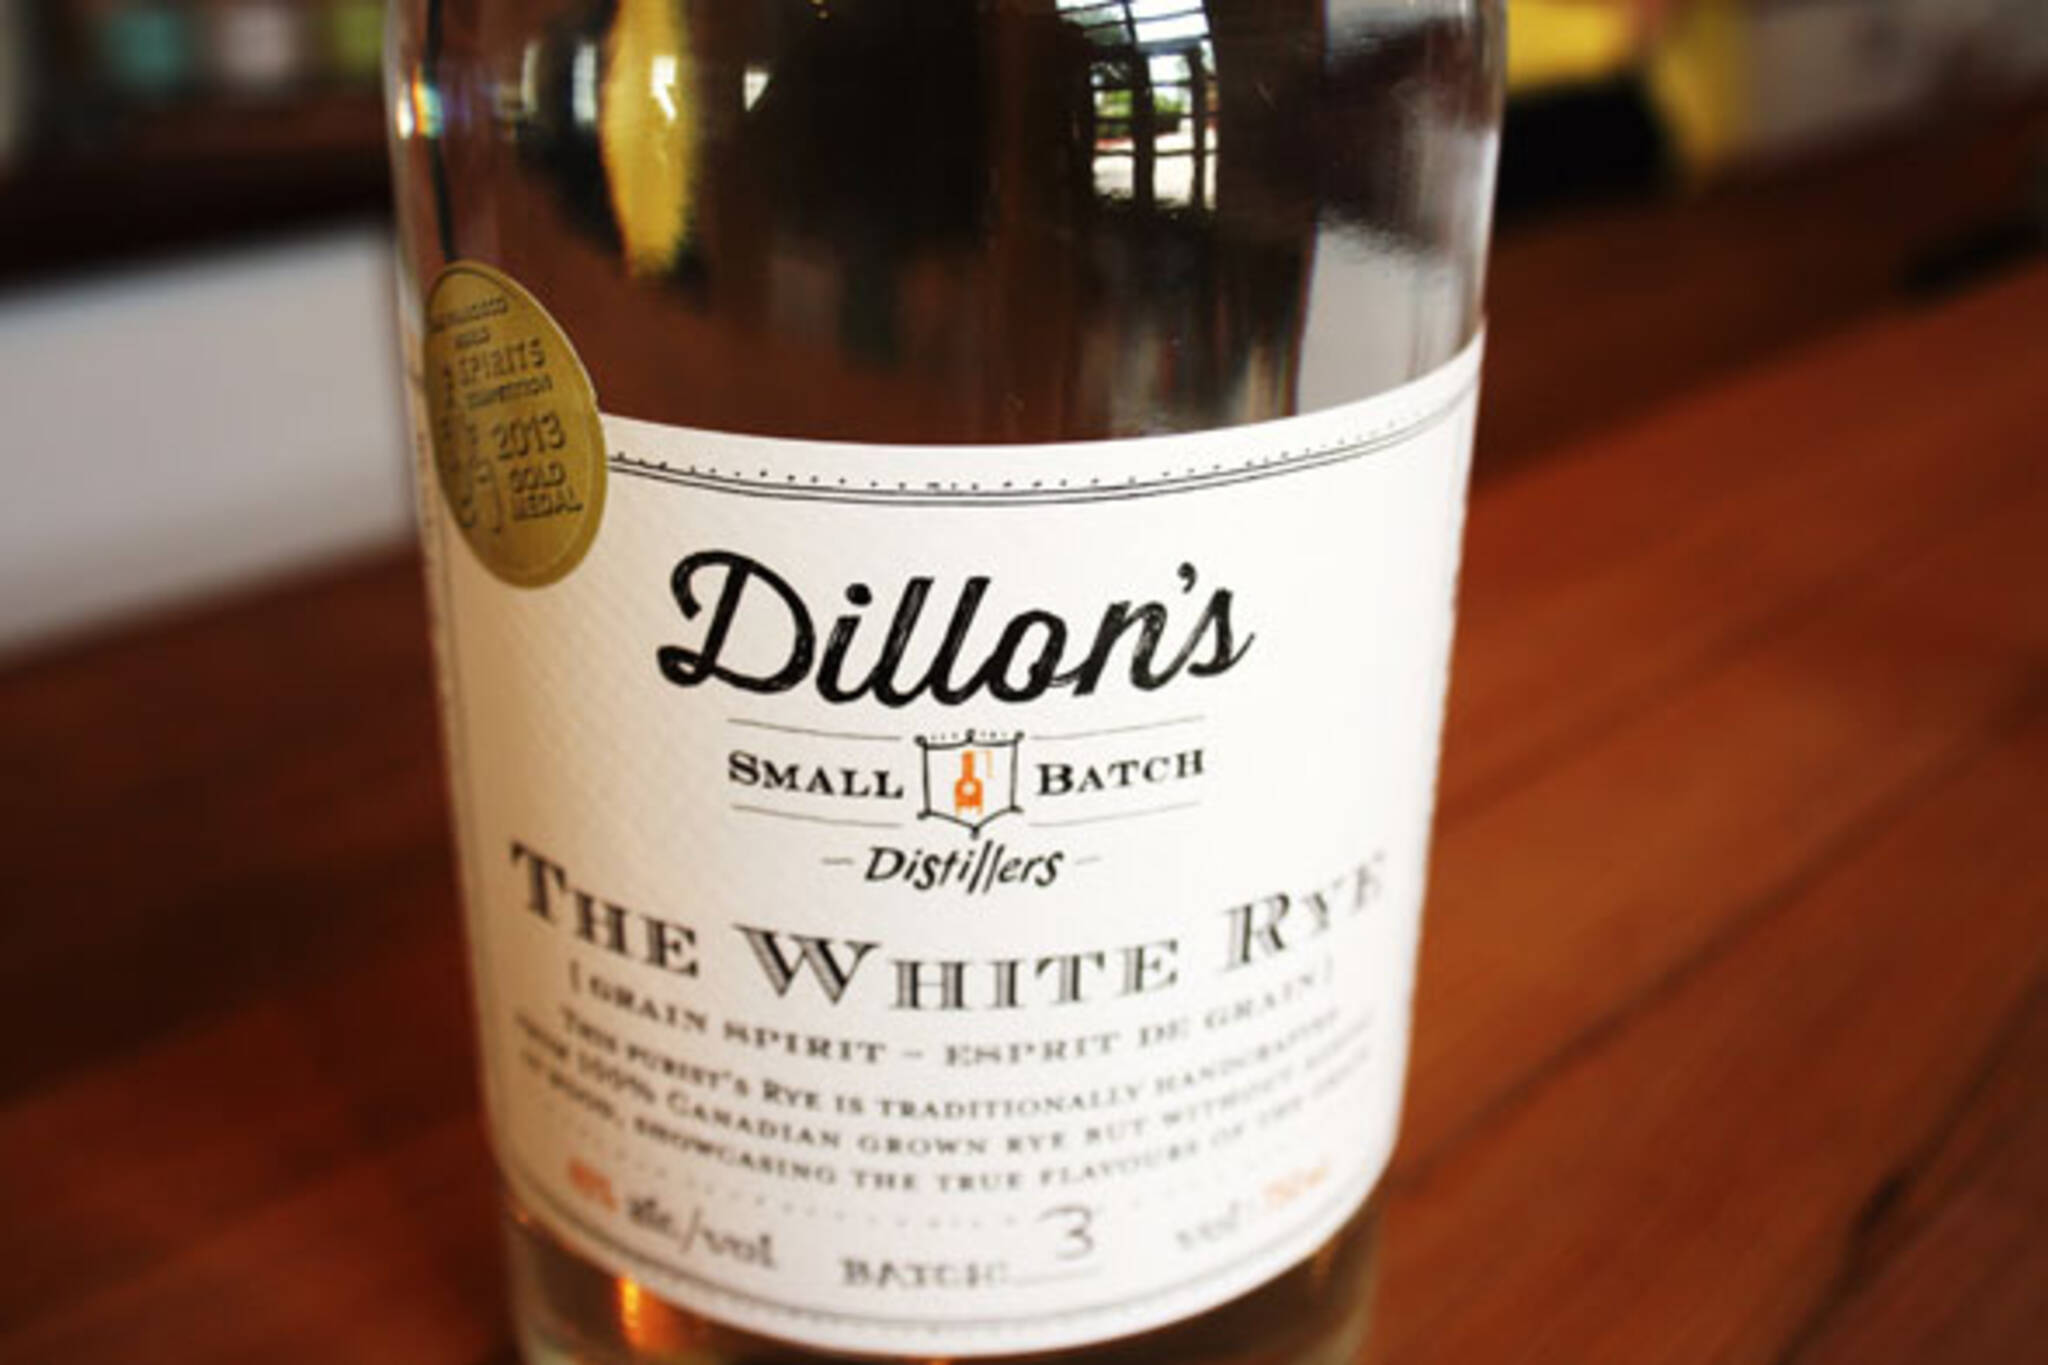 Dillons Distillery